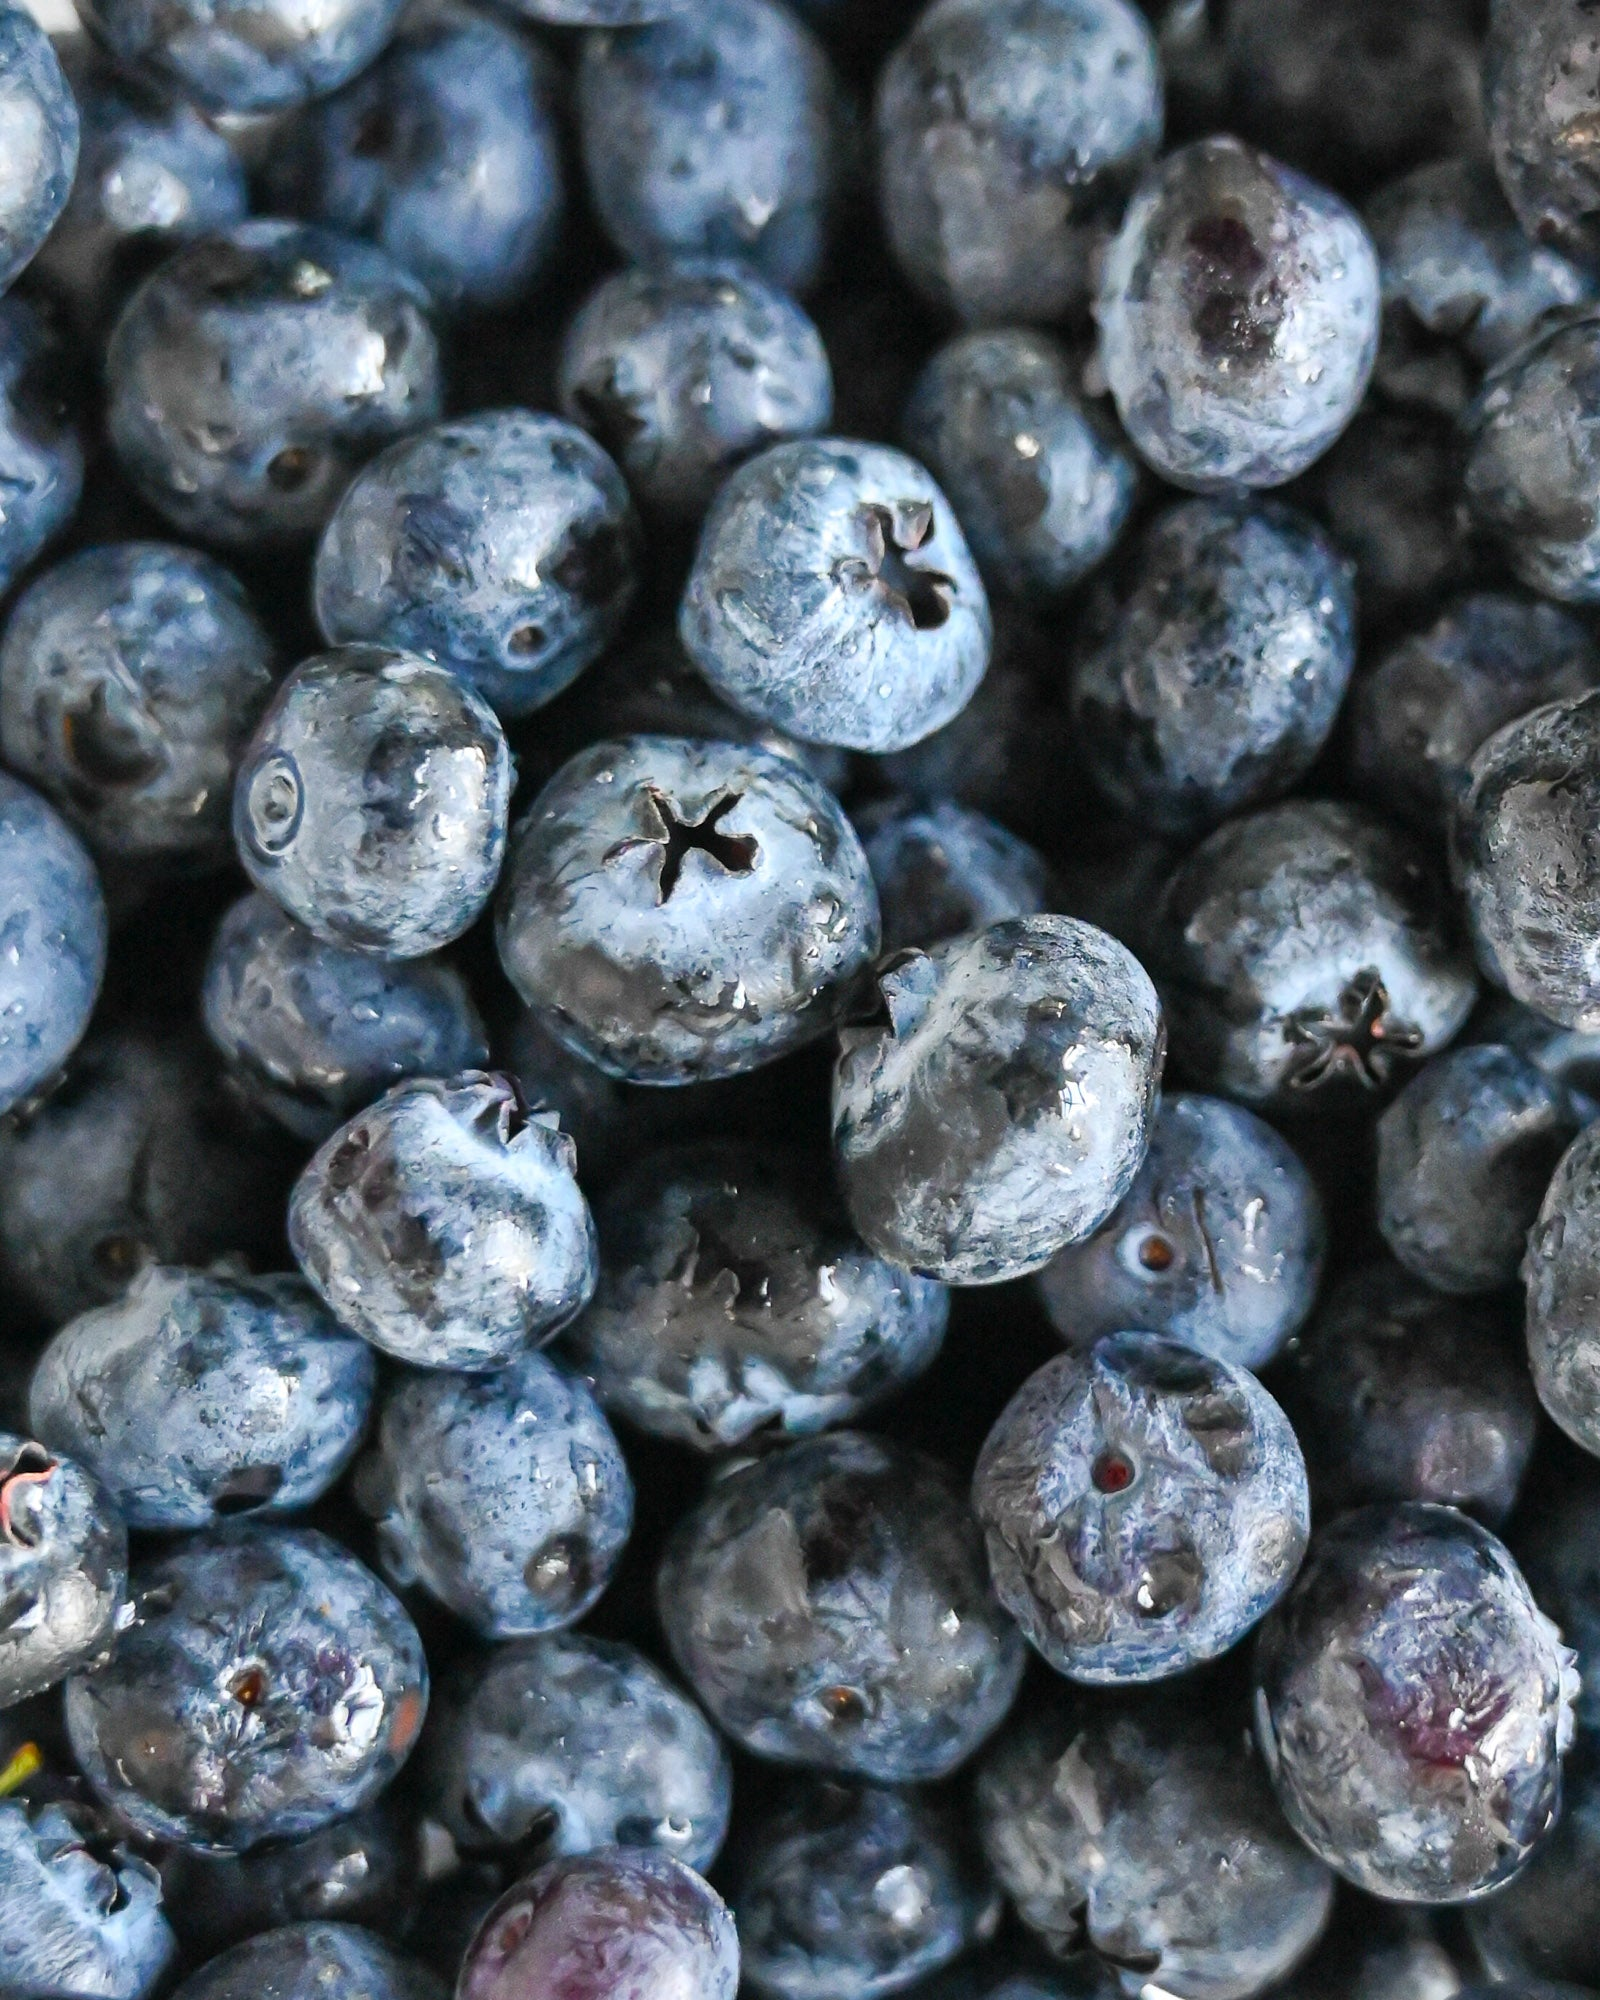 Health benefits of blueberries for dogs